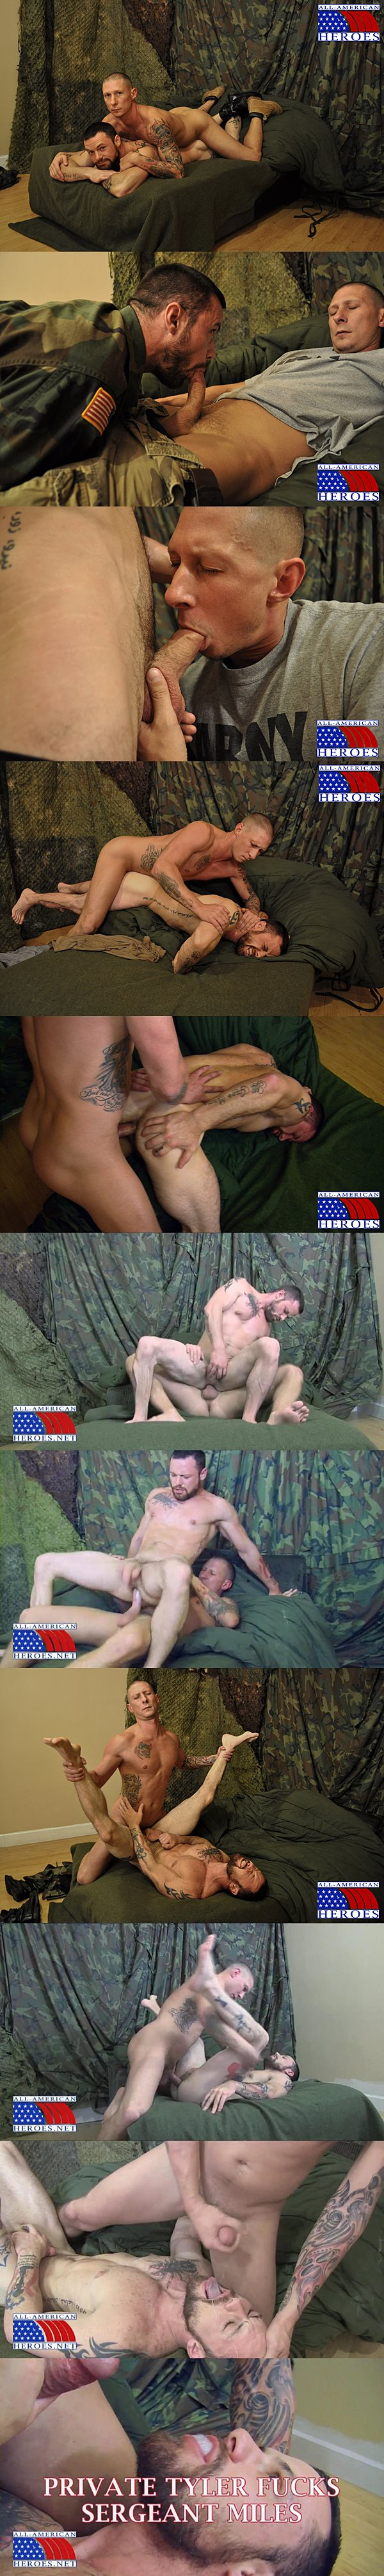 Horse hung private Tyler power fucks masculine sergeant Miles and gives him a hot cum facial at All-americanheroes 02